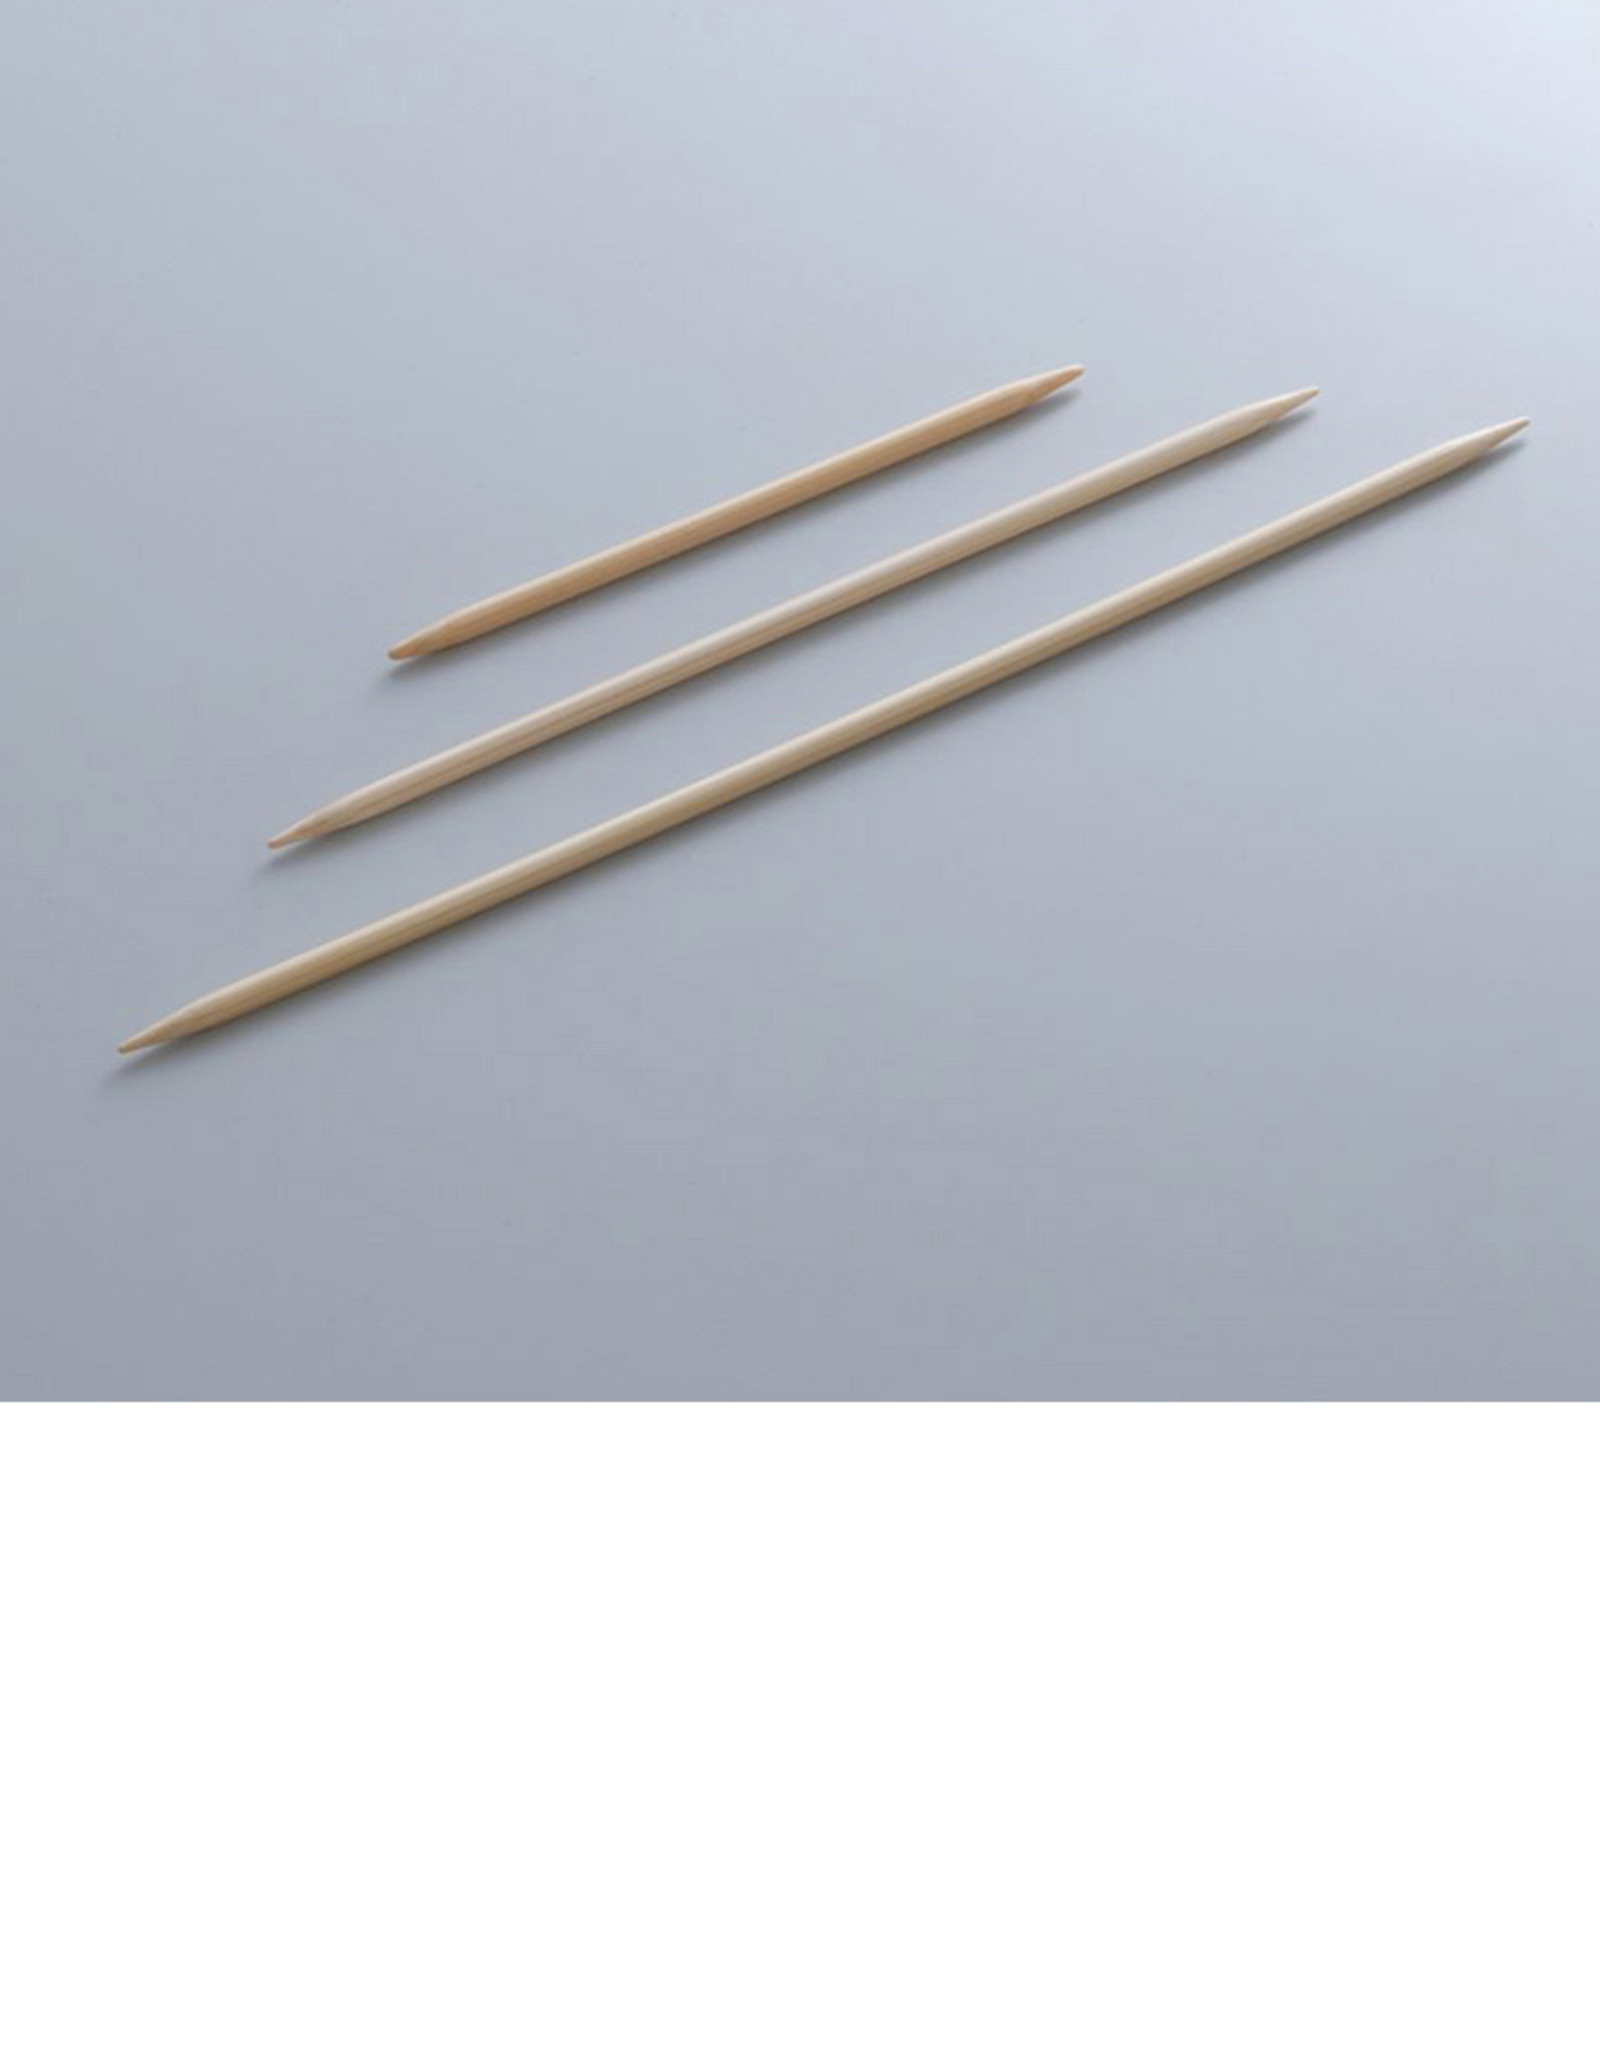 Kinki Amibari KA Double Point Needles US 6